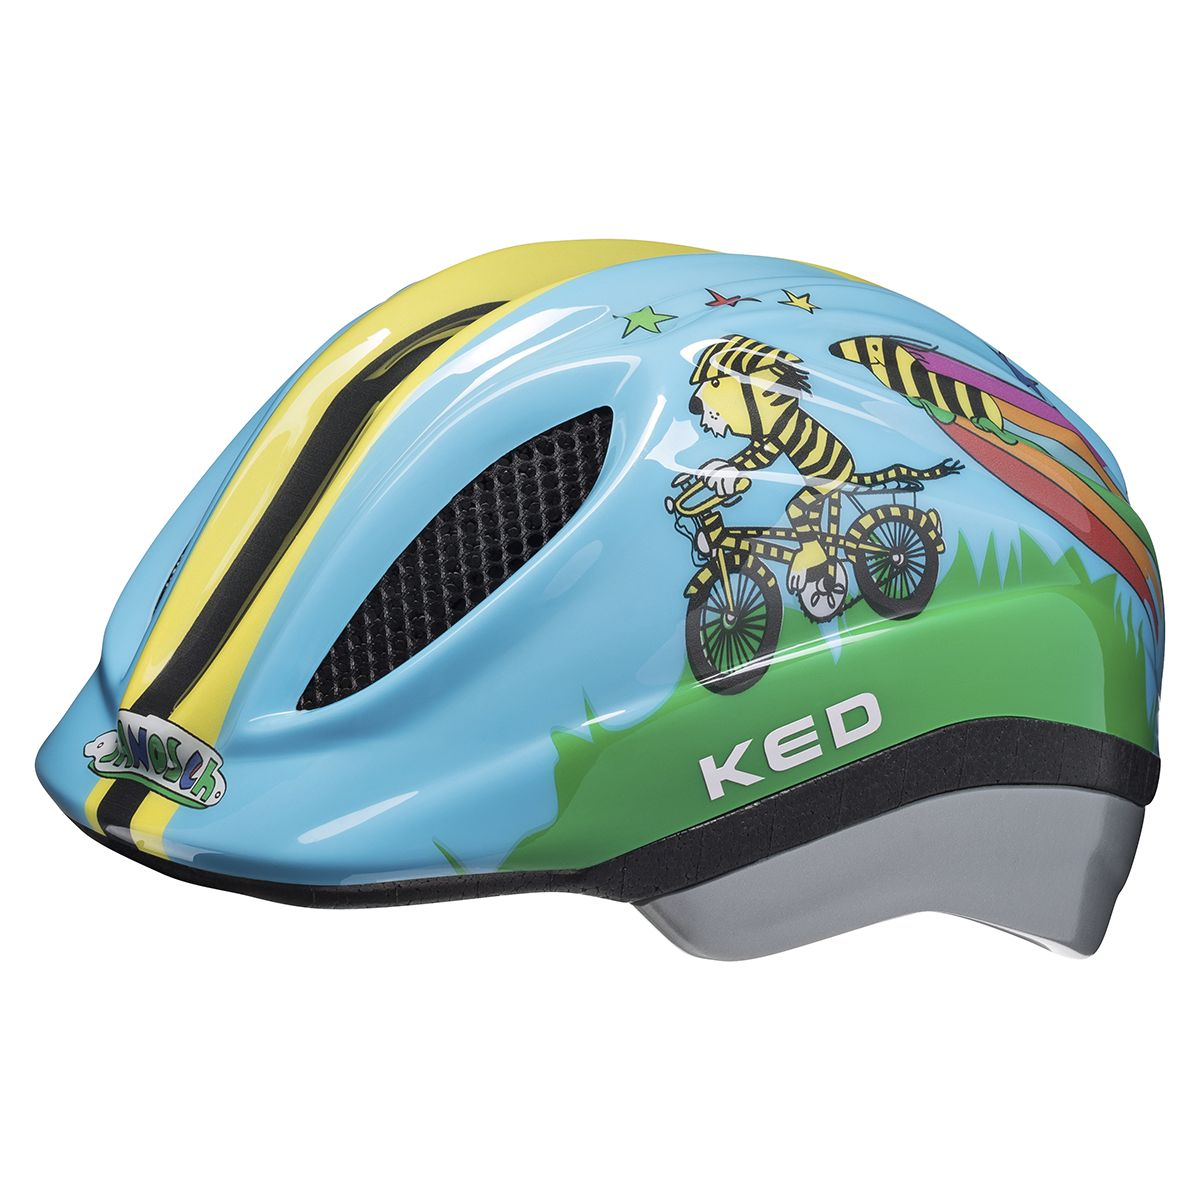 MEGGY ORIGINALS Kinder-Fahrradhelm